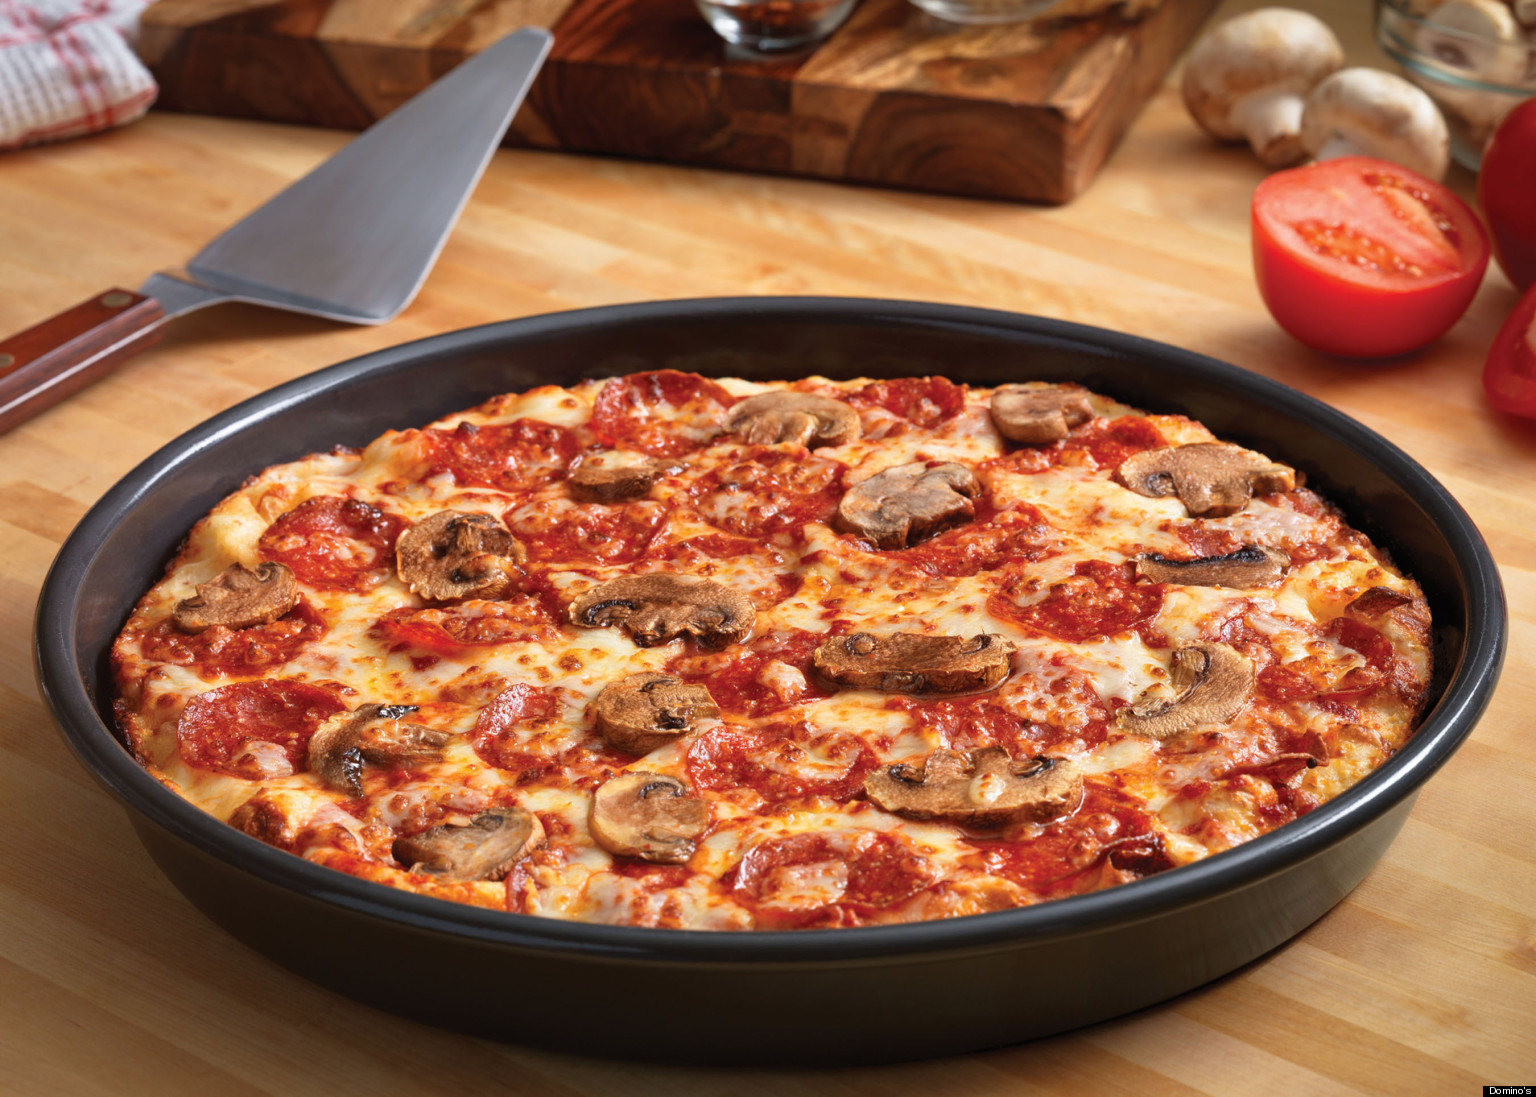 Domino 39 s introduces 39 handmade pan pizza 39 marches in on for Domino pizza